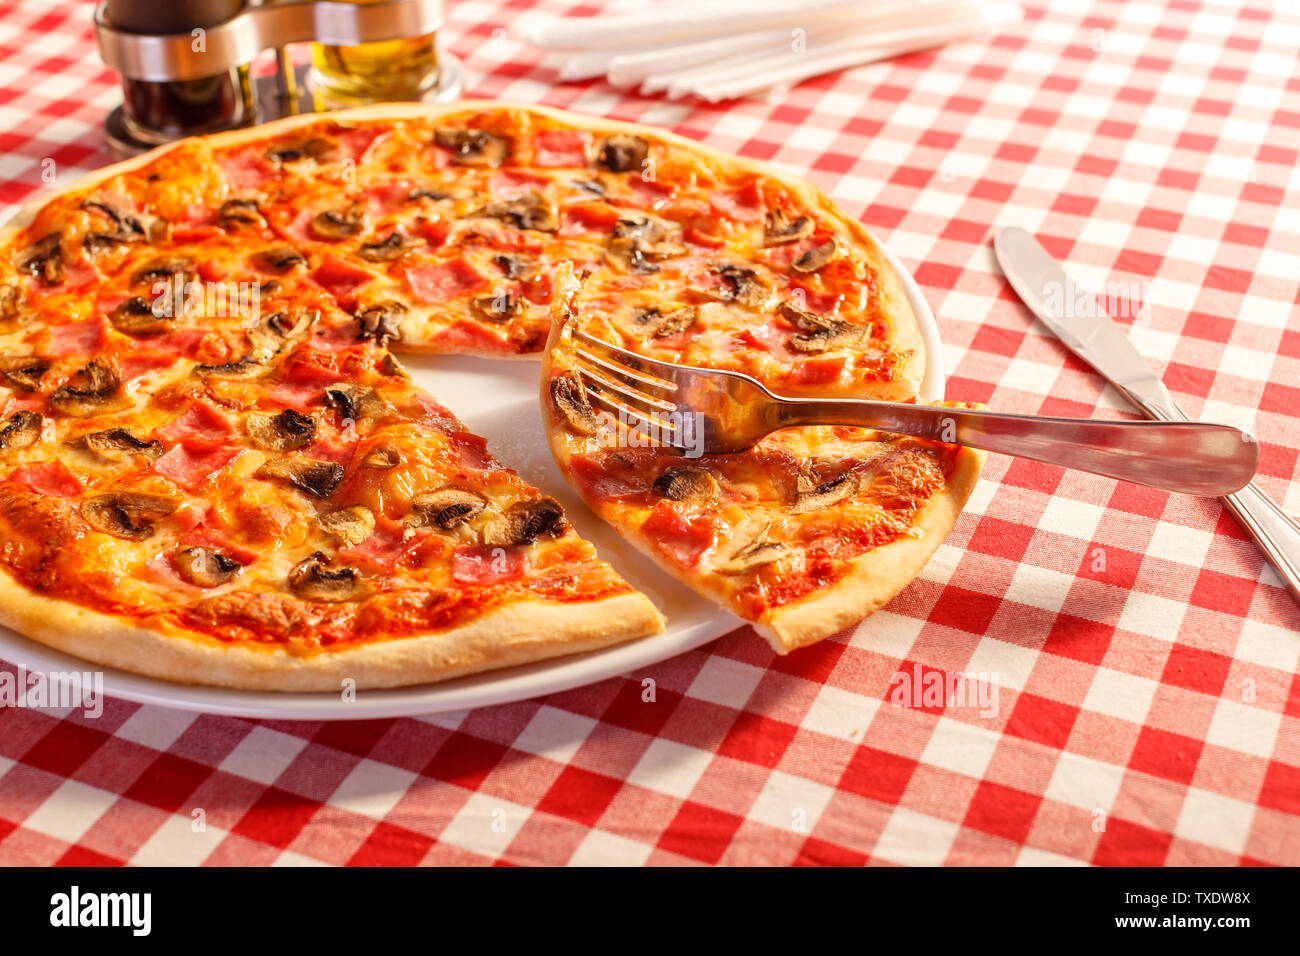 Close up fork takes a piece. Pizza with ham and mushrooms. Delicious hot food sliced and served on white platter. Menu photo, Italian fast food. - Stock Image